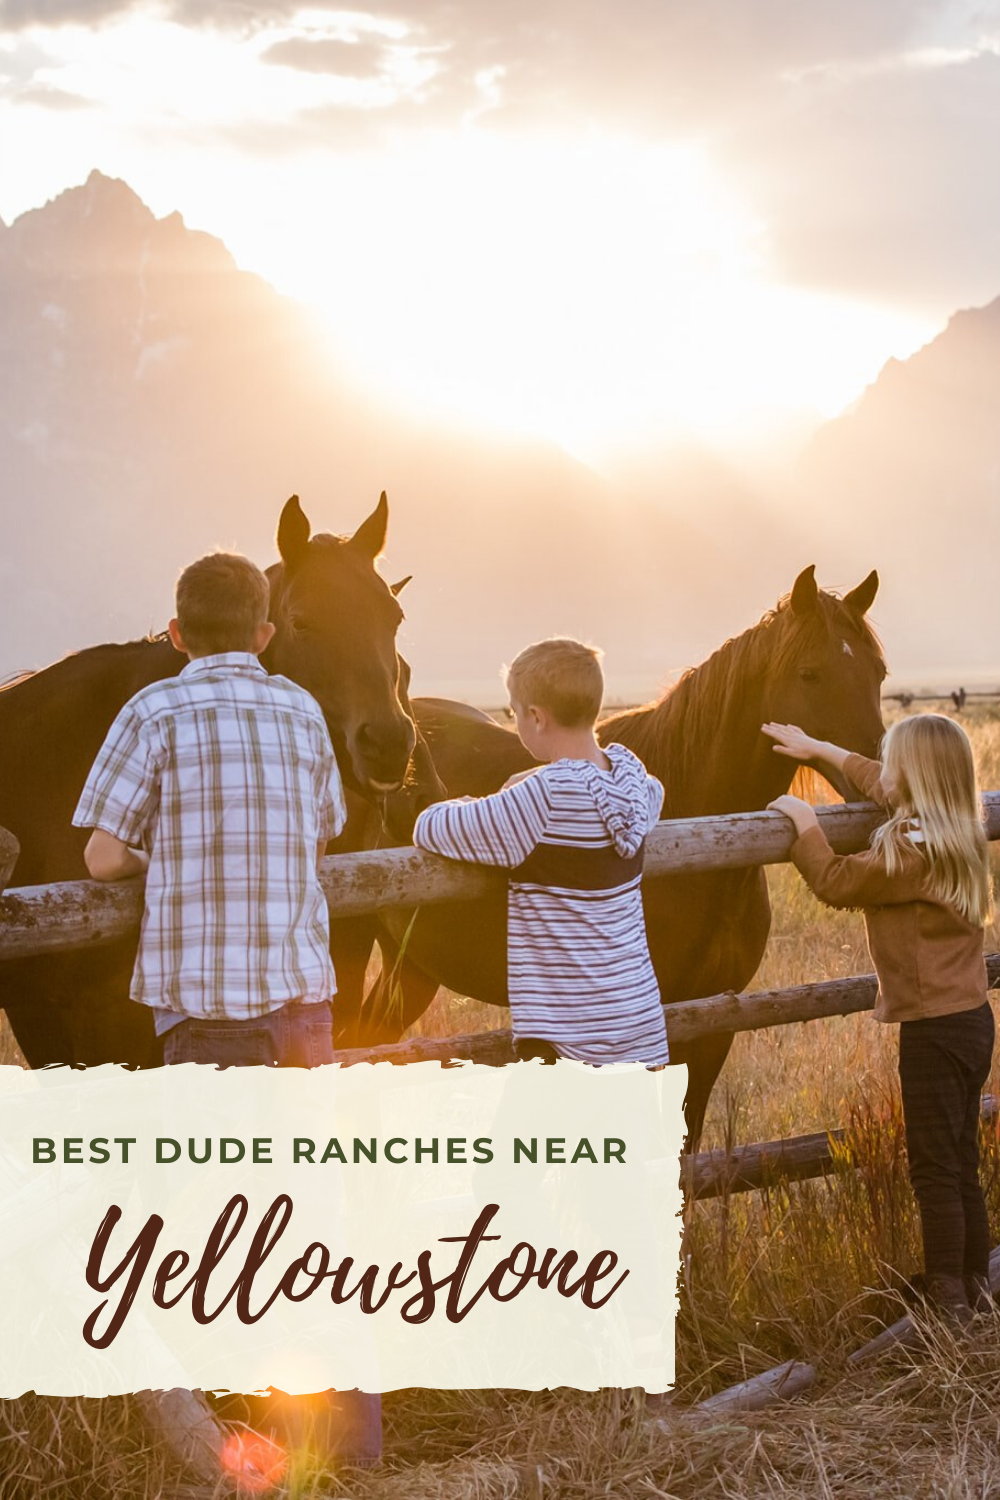 best dude ranches near Yellowstone